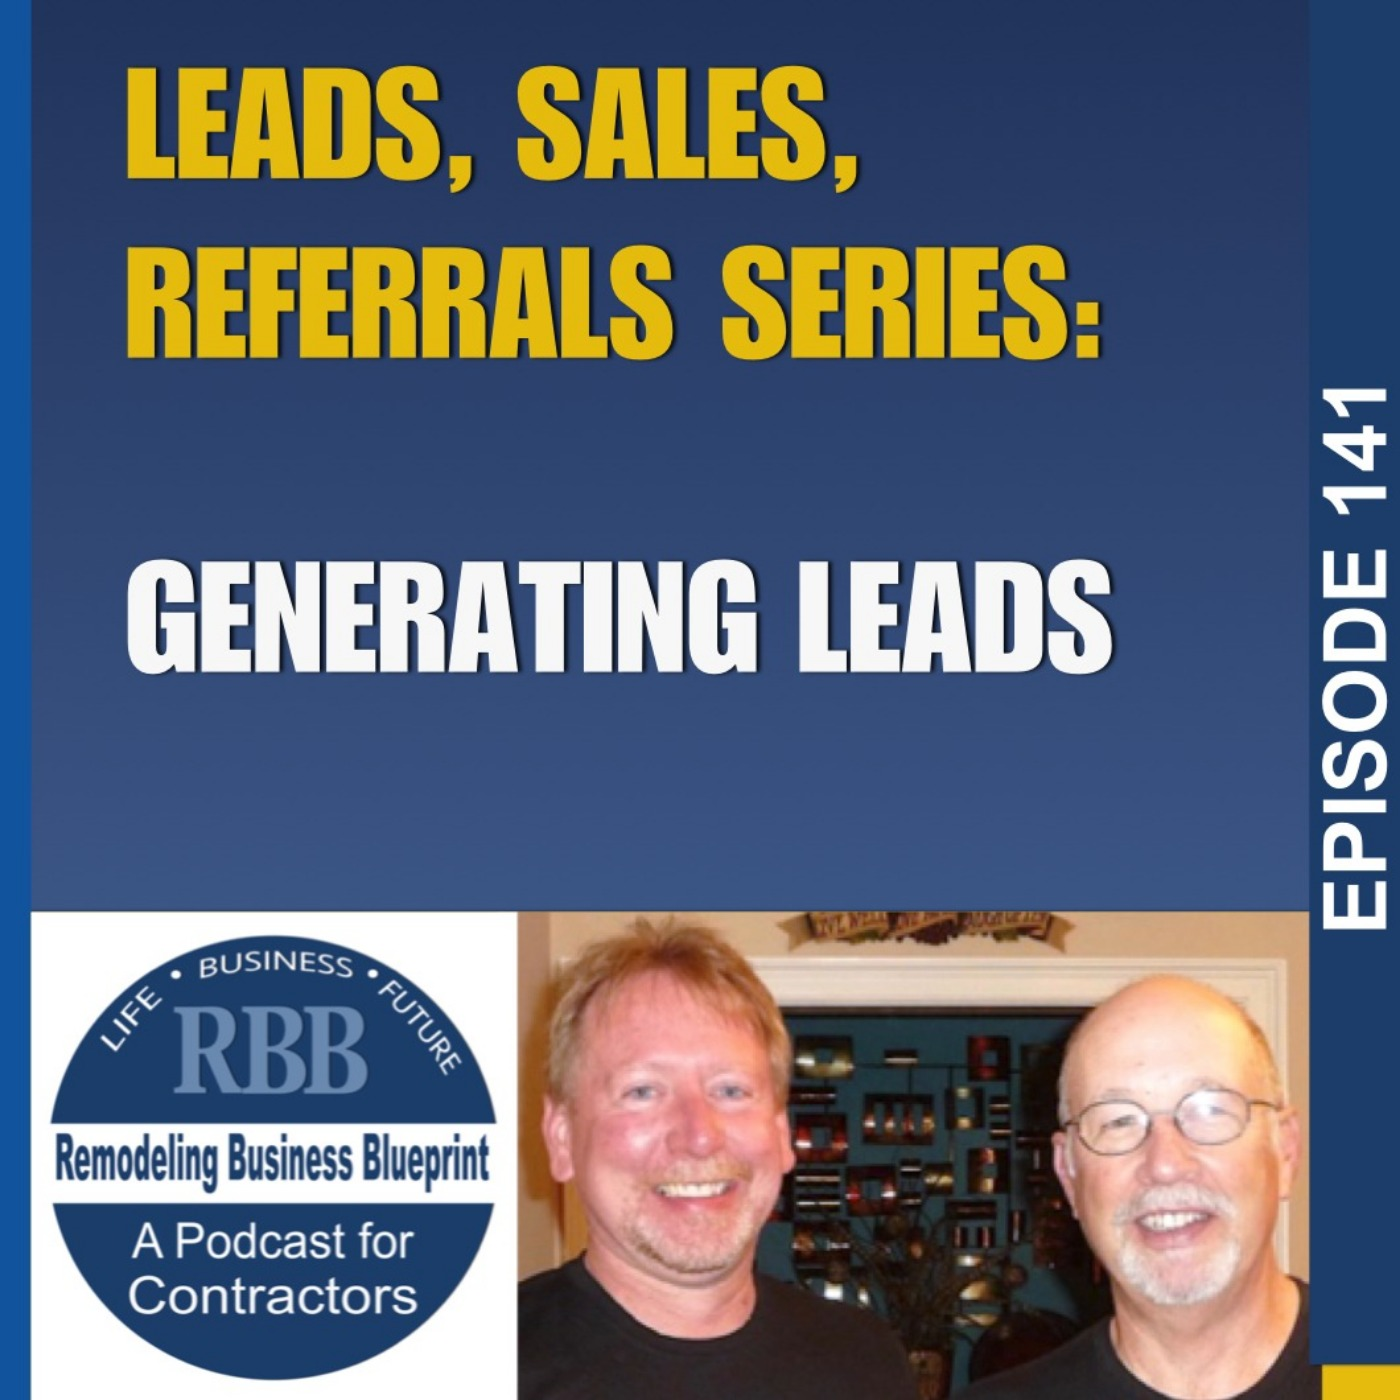 Leads, Sales, Referrals Series - Generating Leads